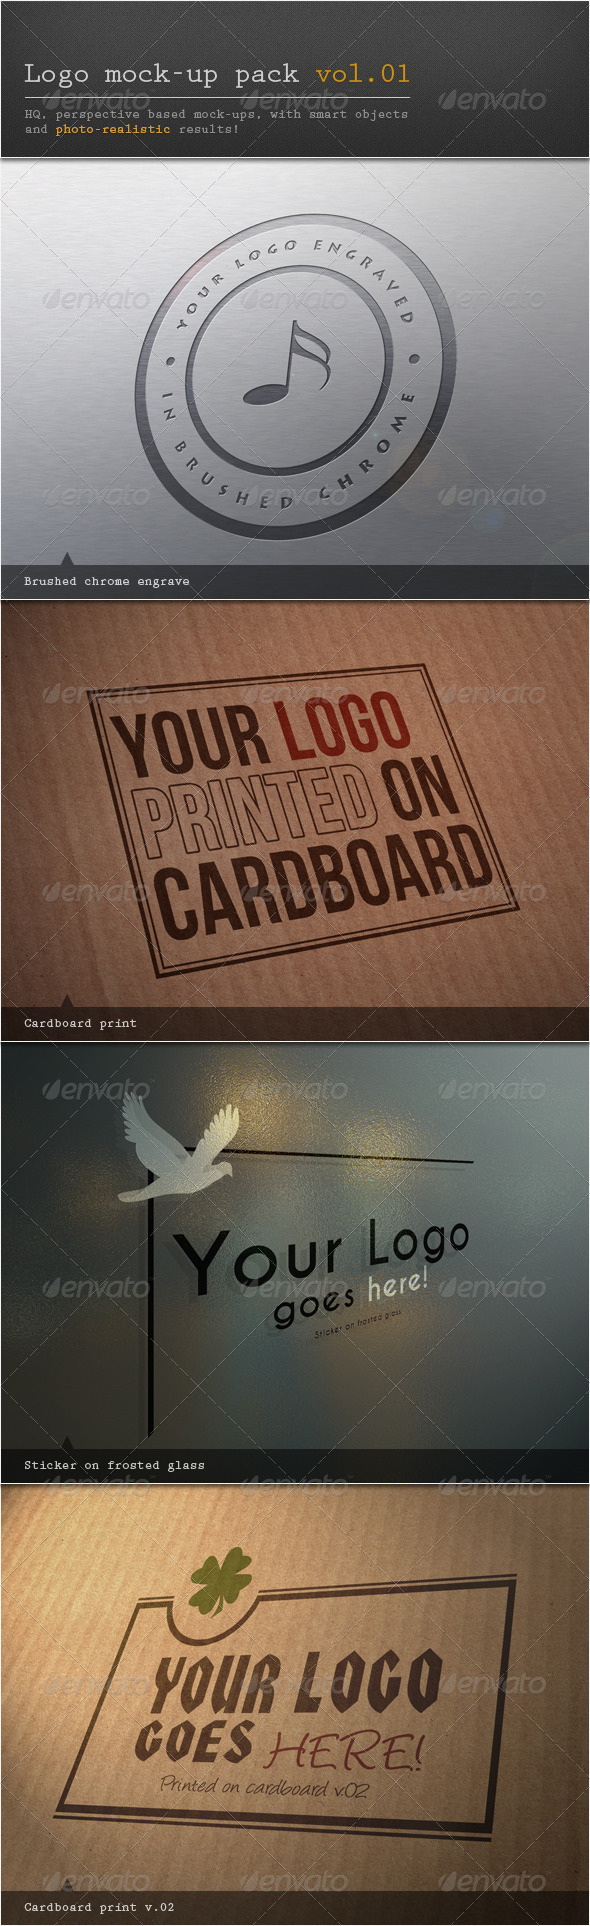 Logo Mock-up Pack Vol.01